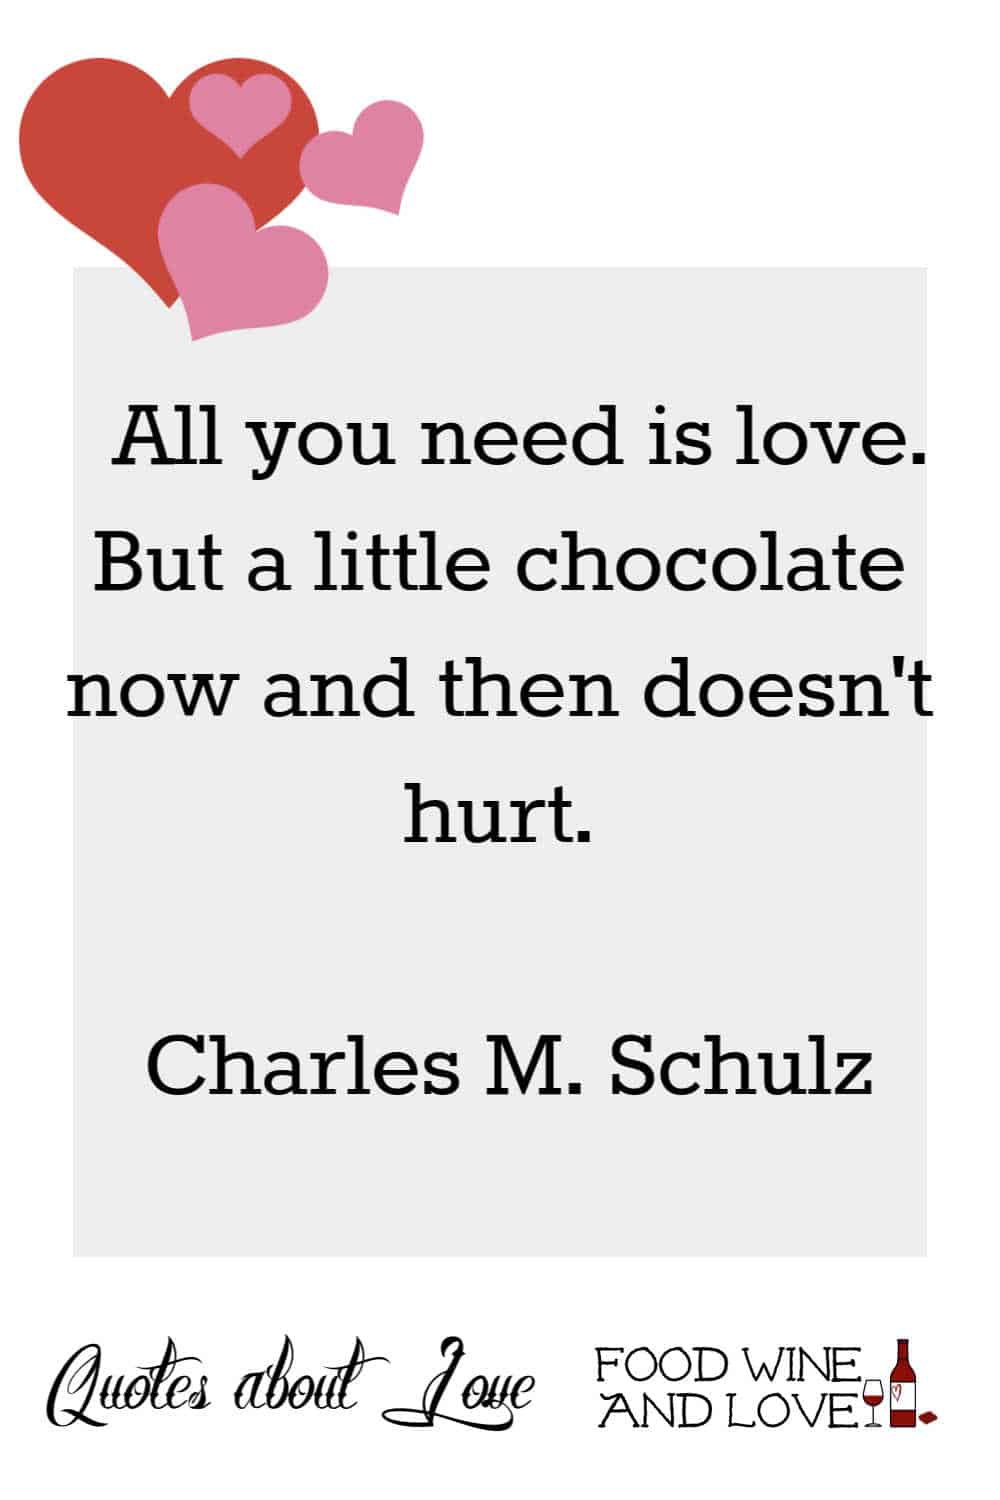 All you need is love. But a little chocolate now and then doesn't hurt.  Charles M. Schulz